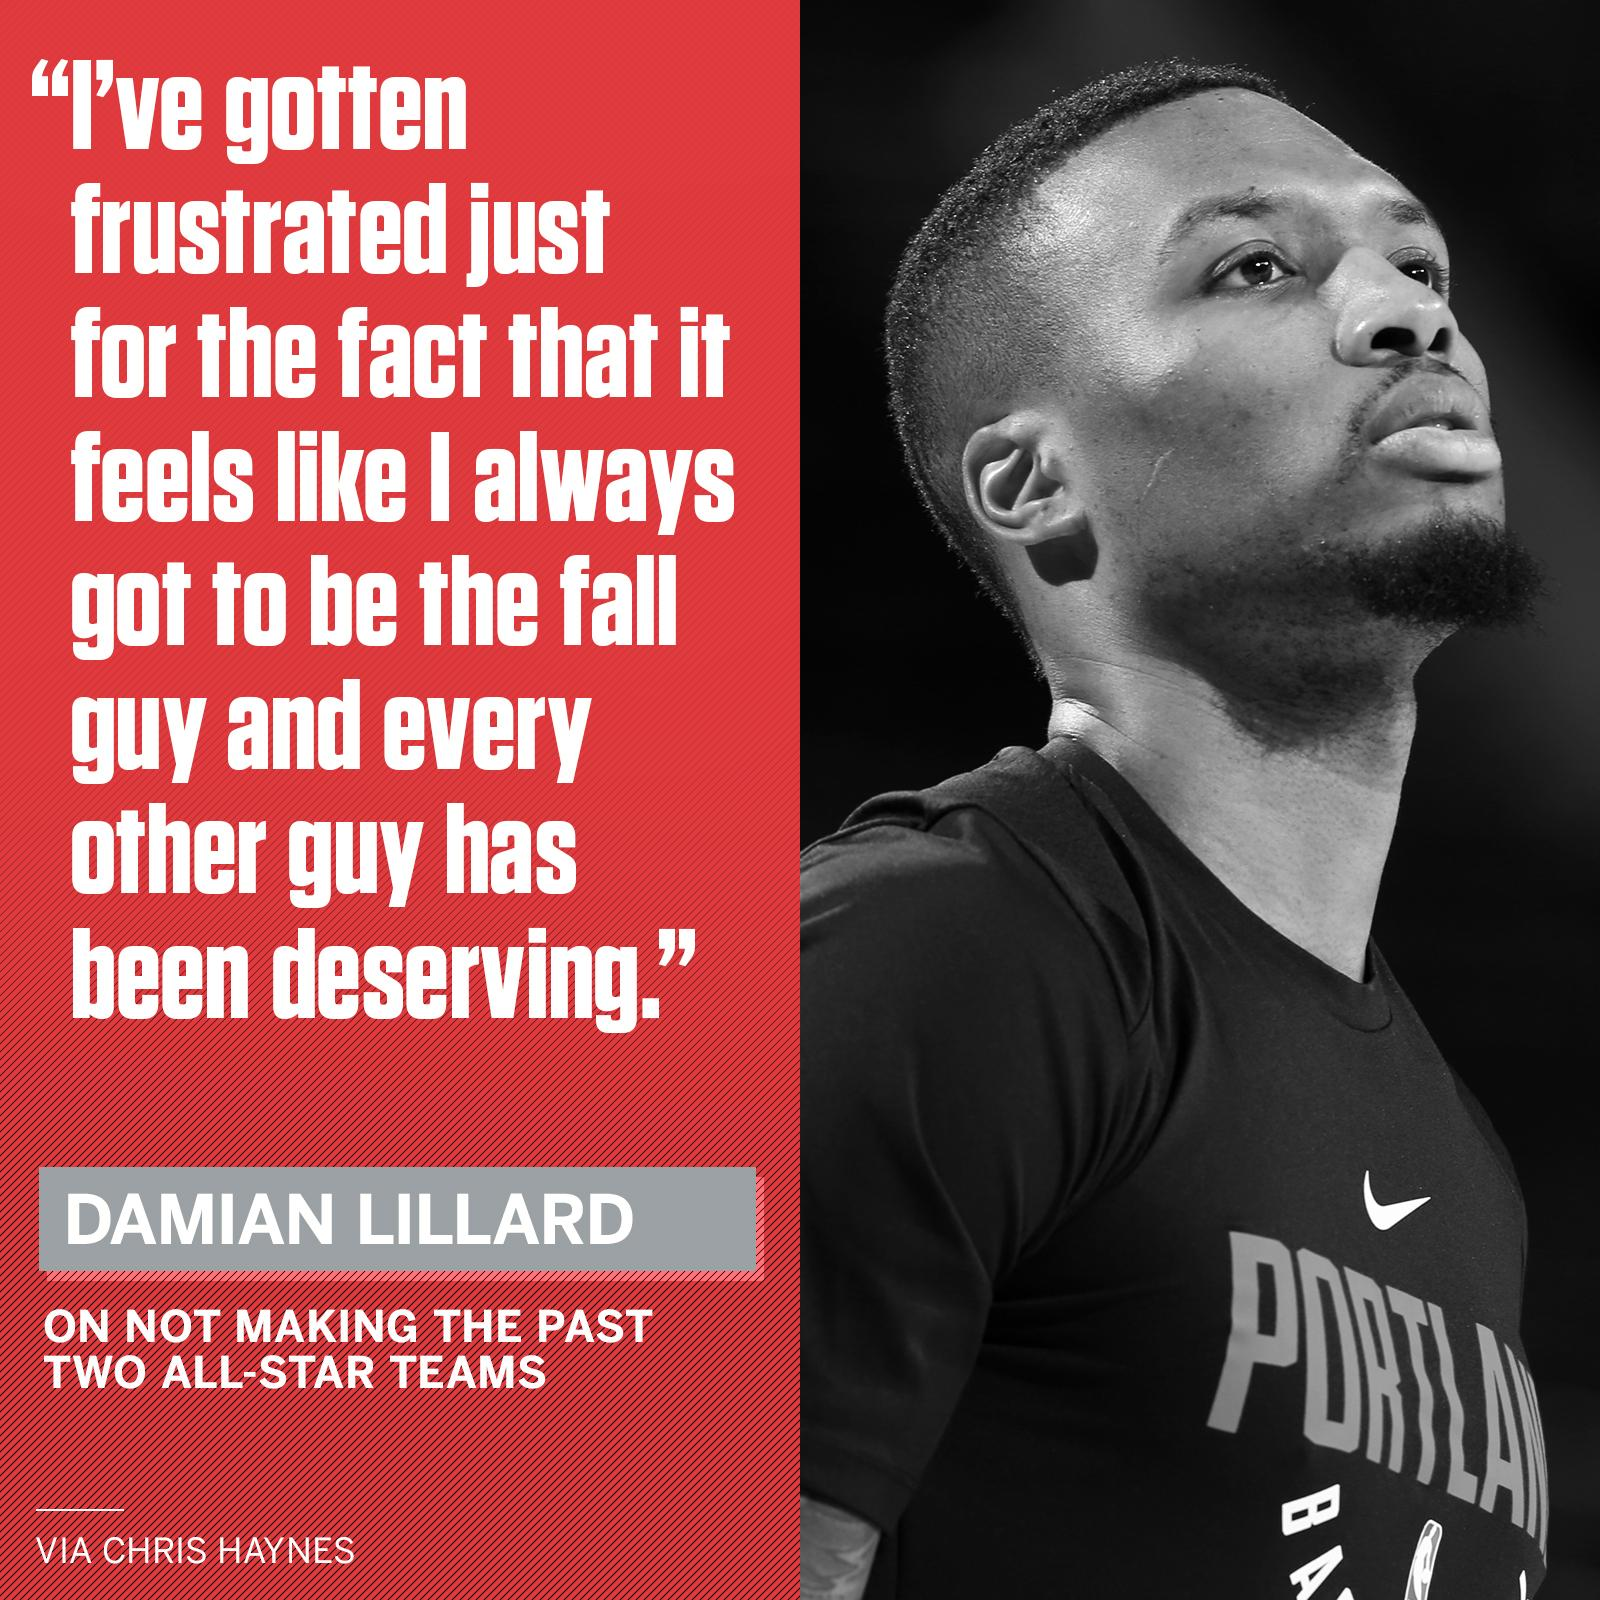 Damian Lillard, along with many others, believe his resume should have double the All-Star appearances. https://t.co/AzywfAr83Z